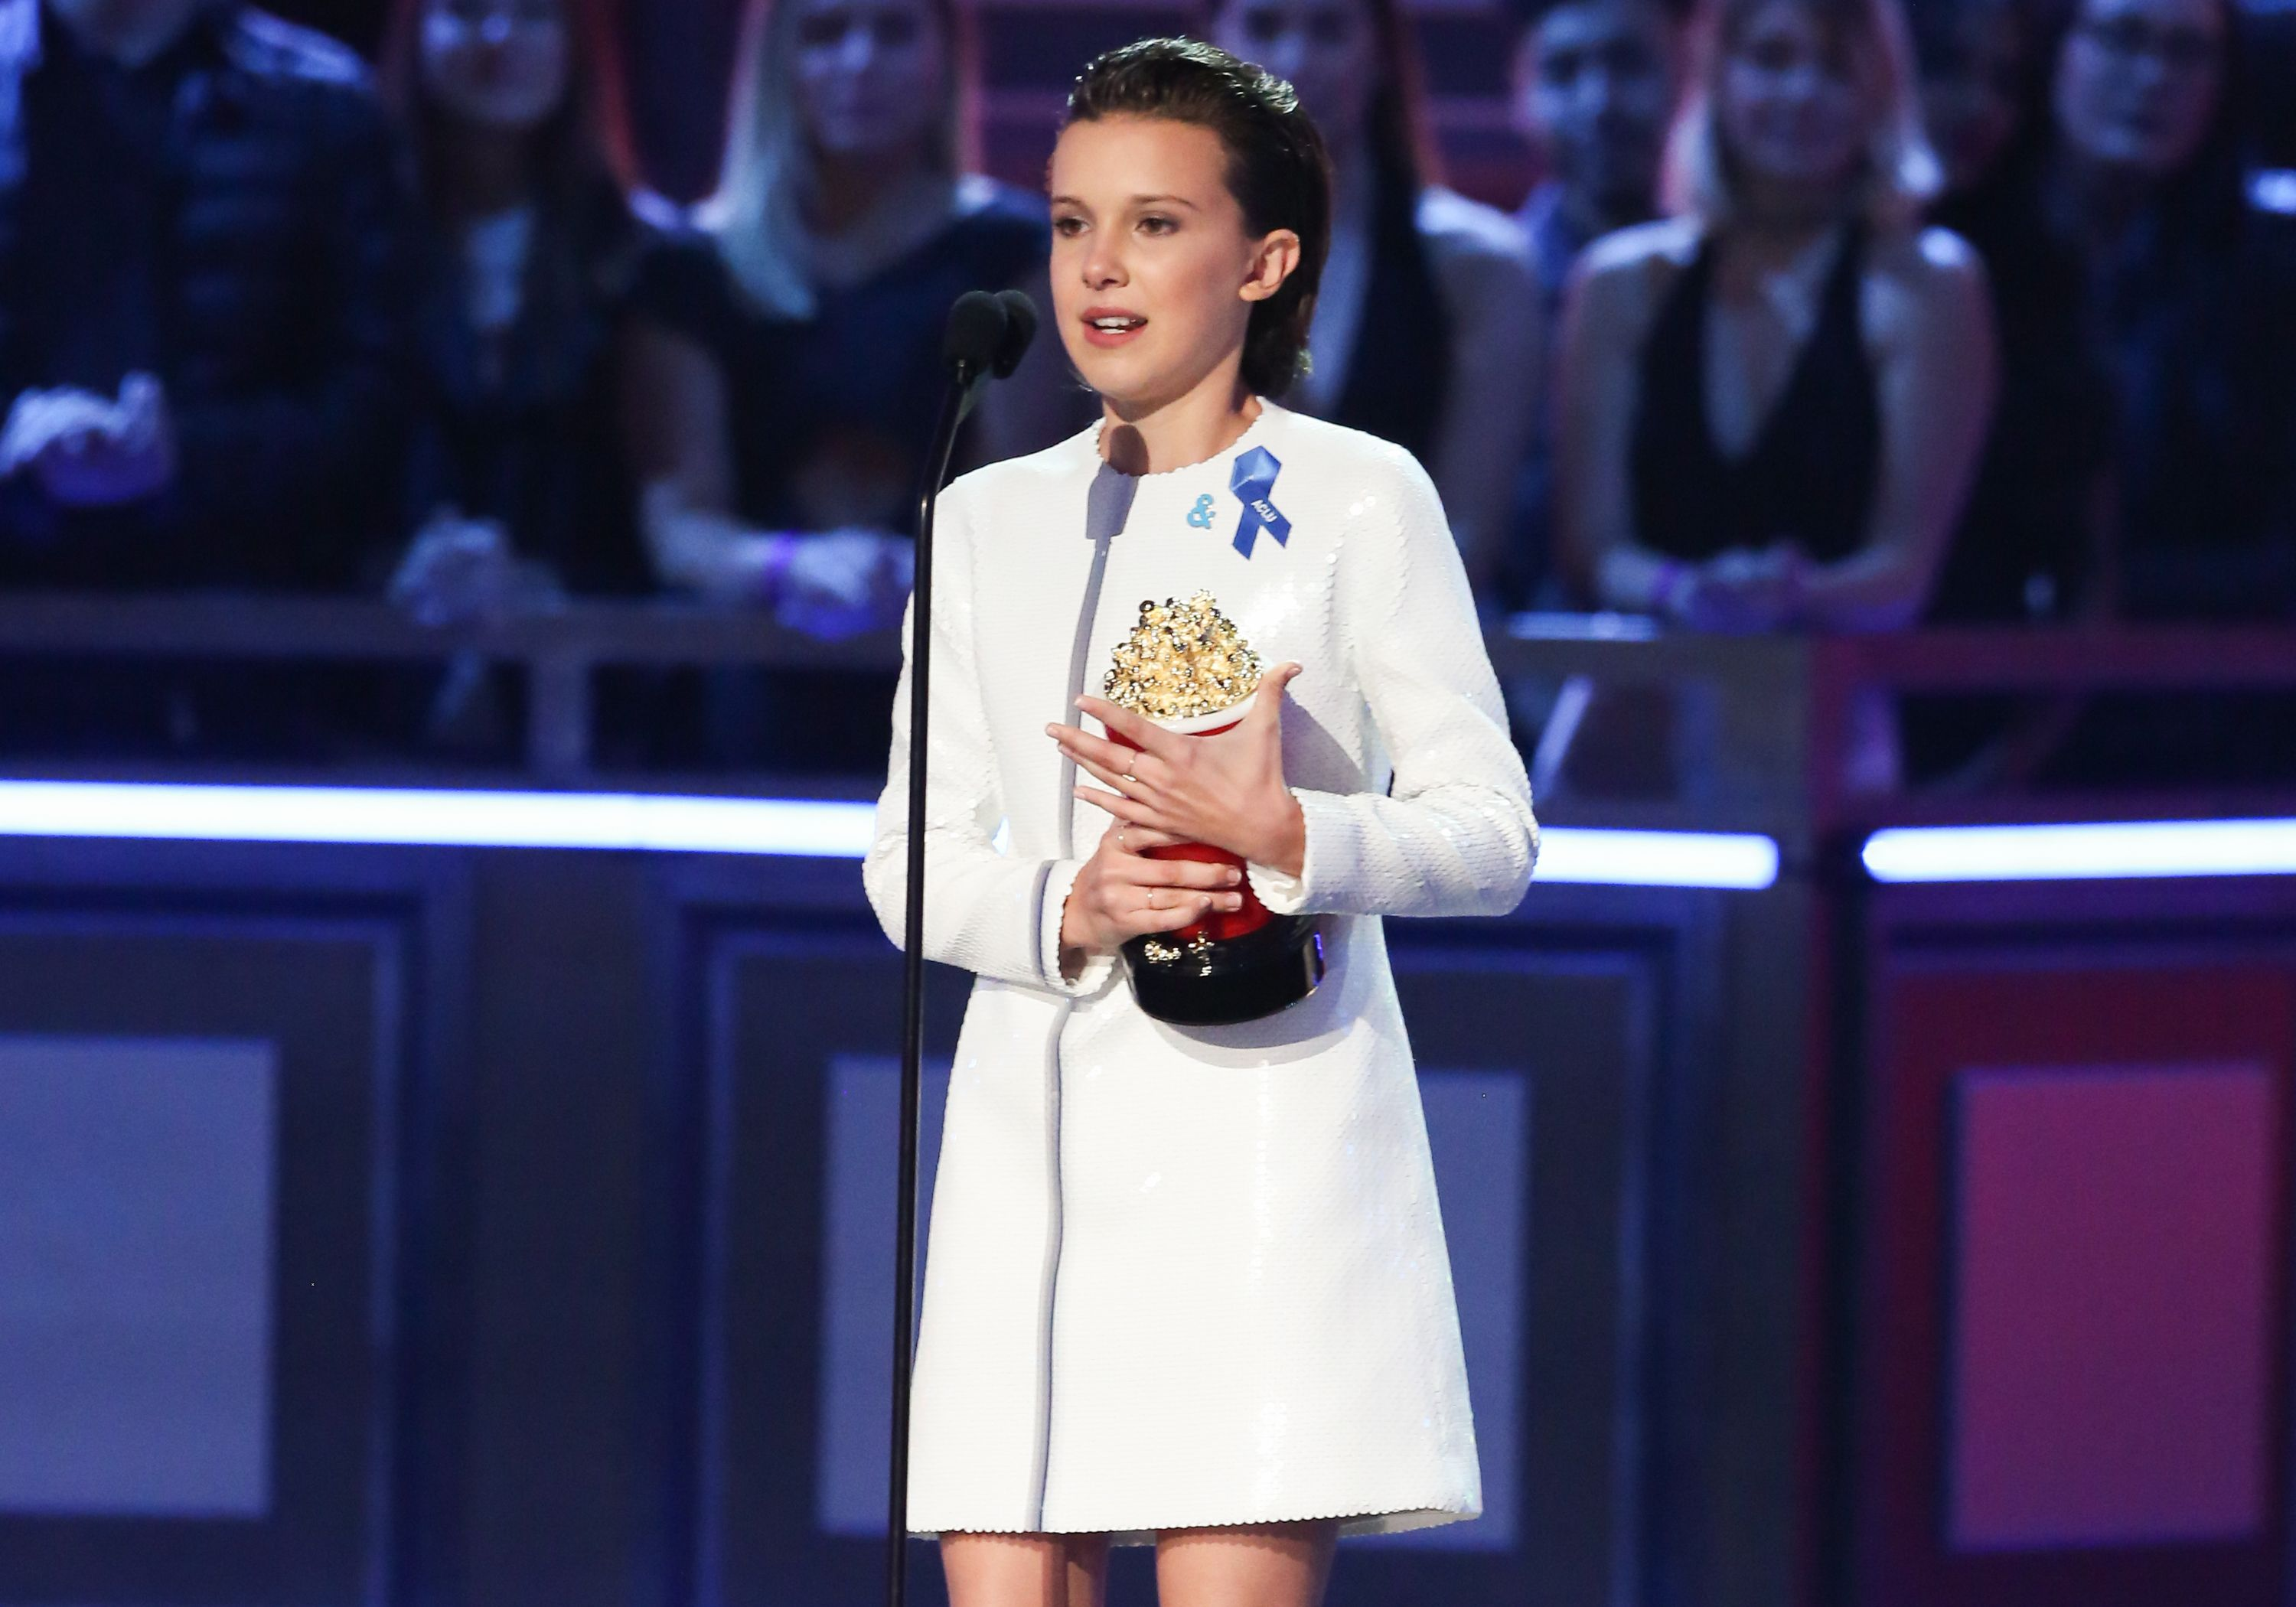 Millie Bobby Brown Quits Twitter After Being Featured In Homophobic Memes